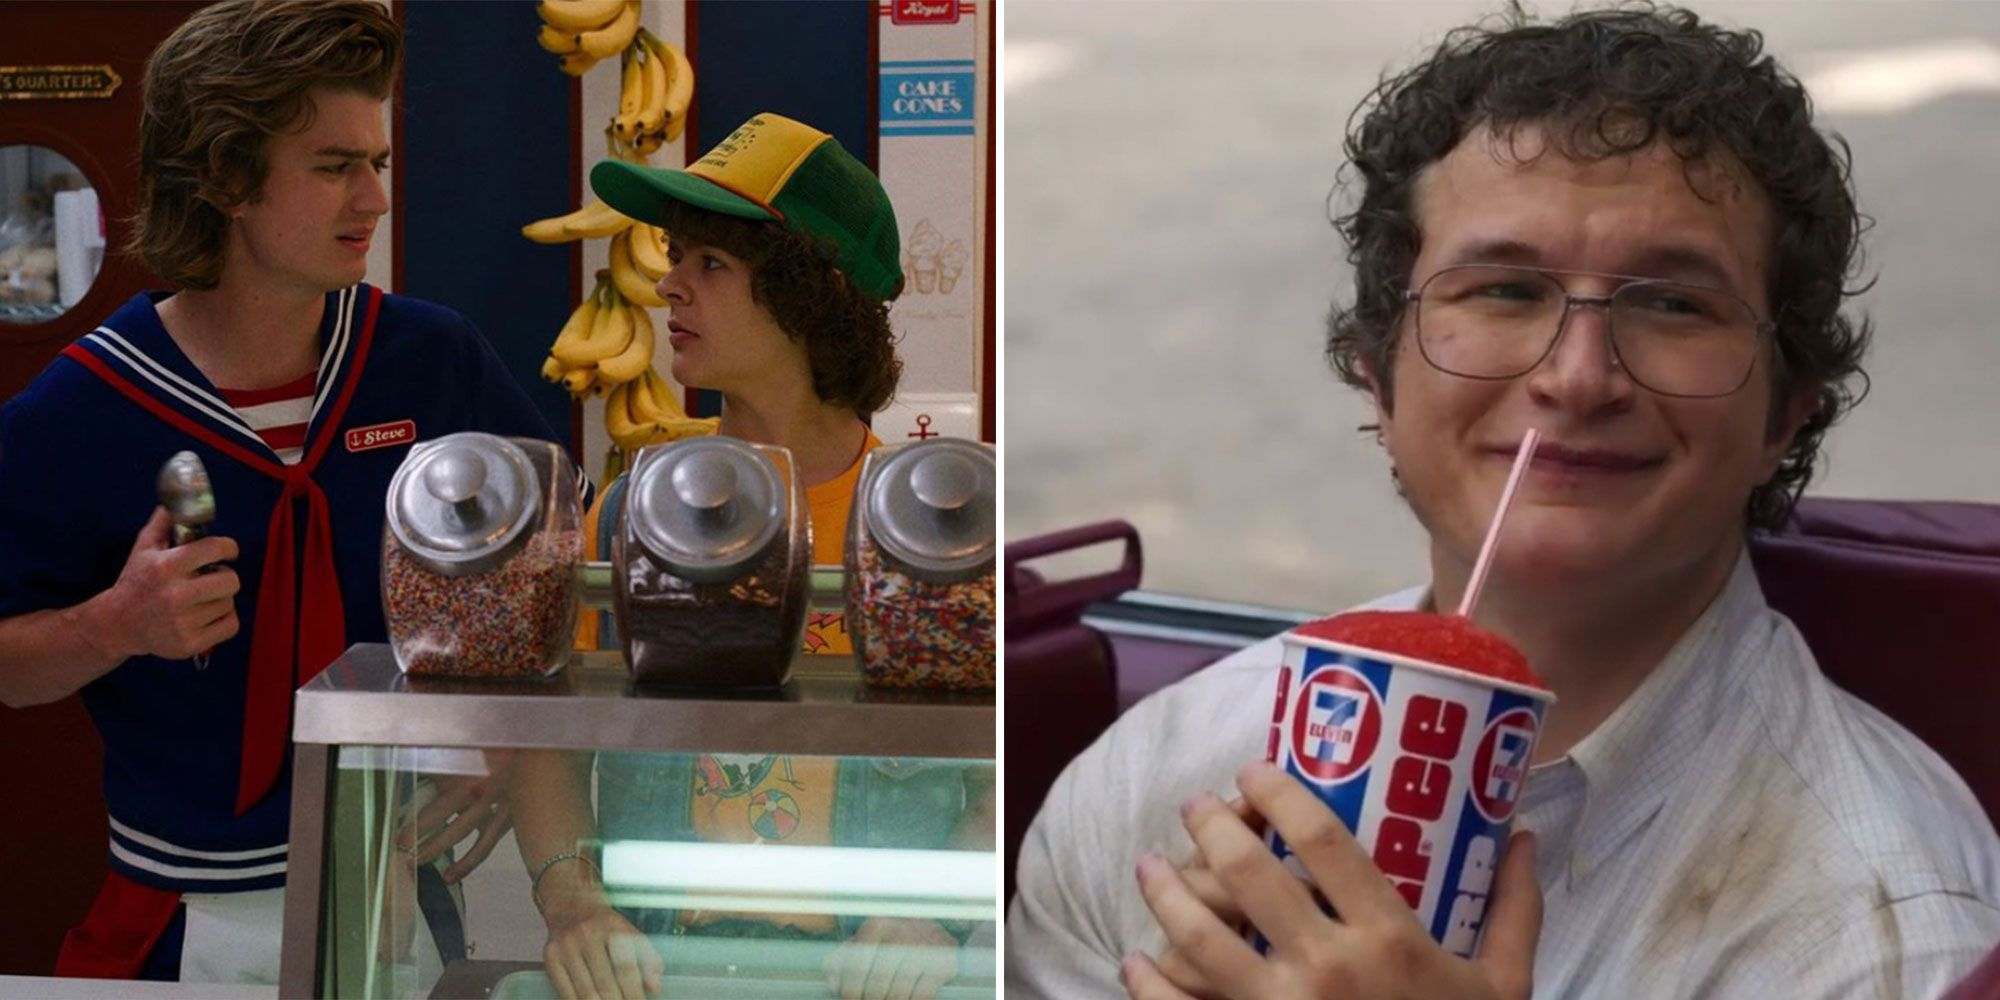 All The 80s Food References You May Have Missed In 'Stranger Things' Season 3